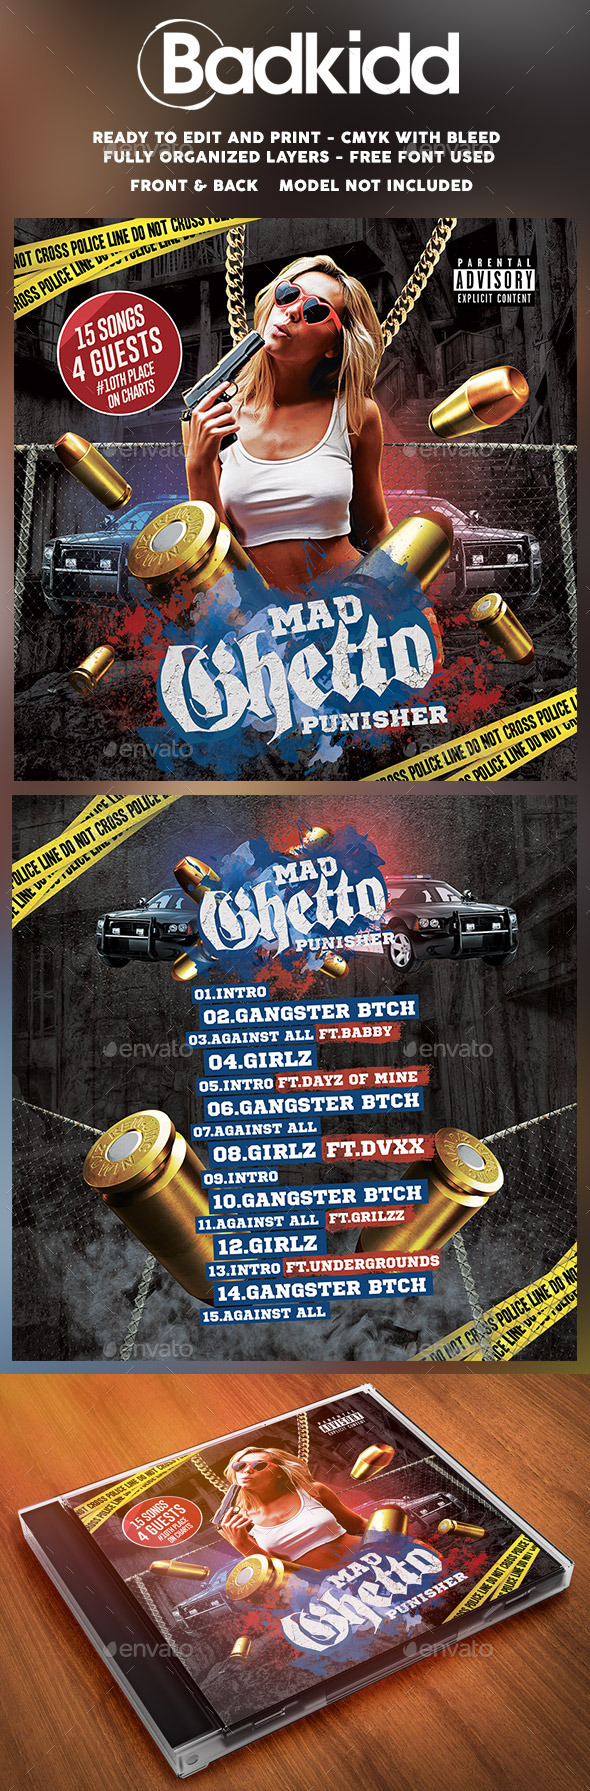 Mixtape Cover Mad Ghetto - CD & DVD Artwork Print Templates